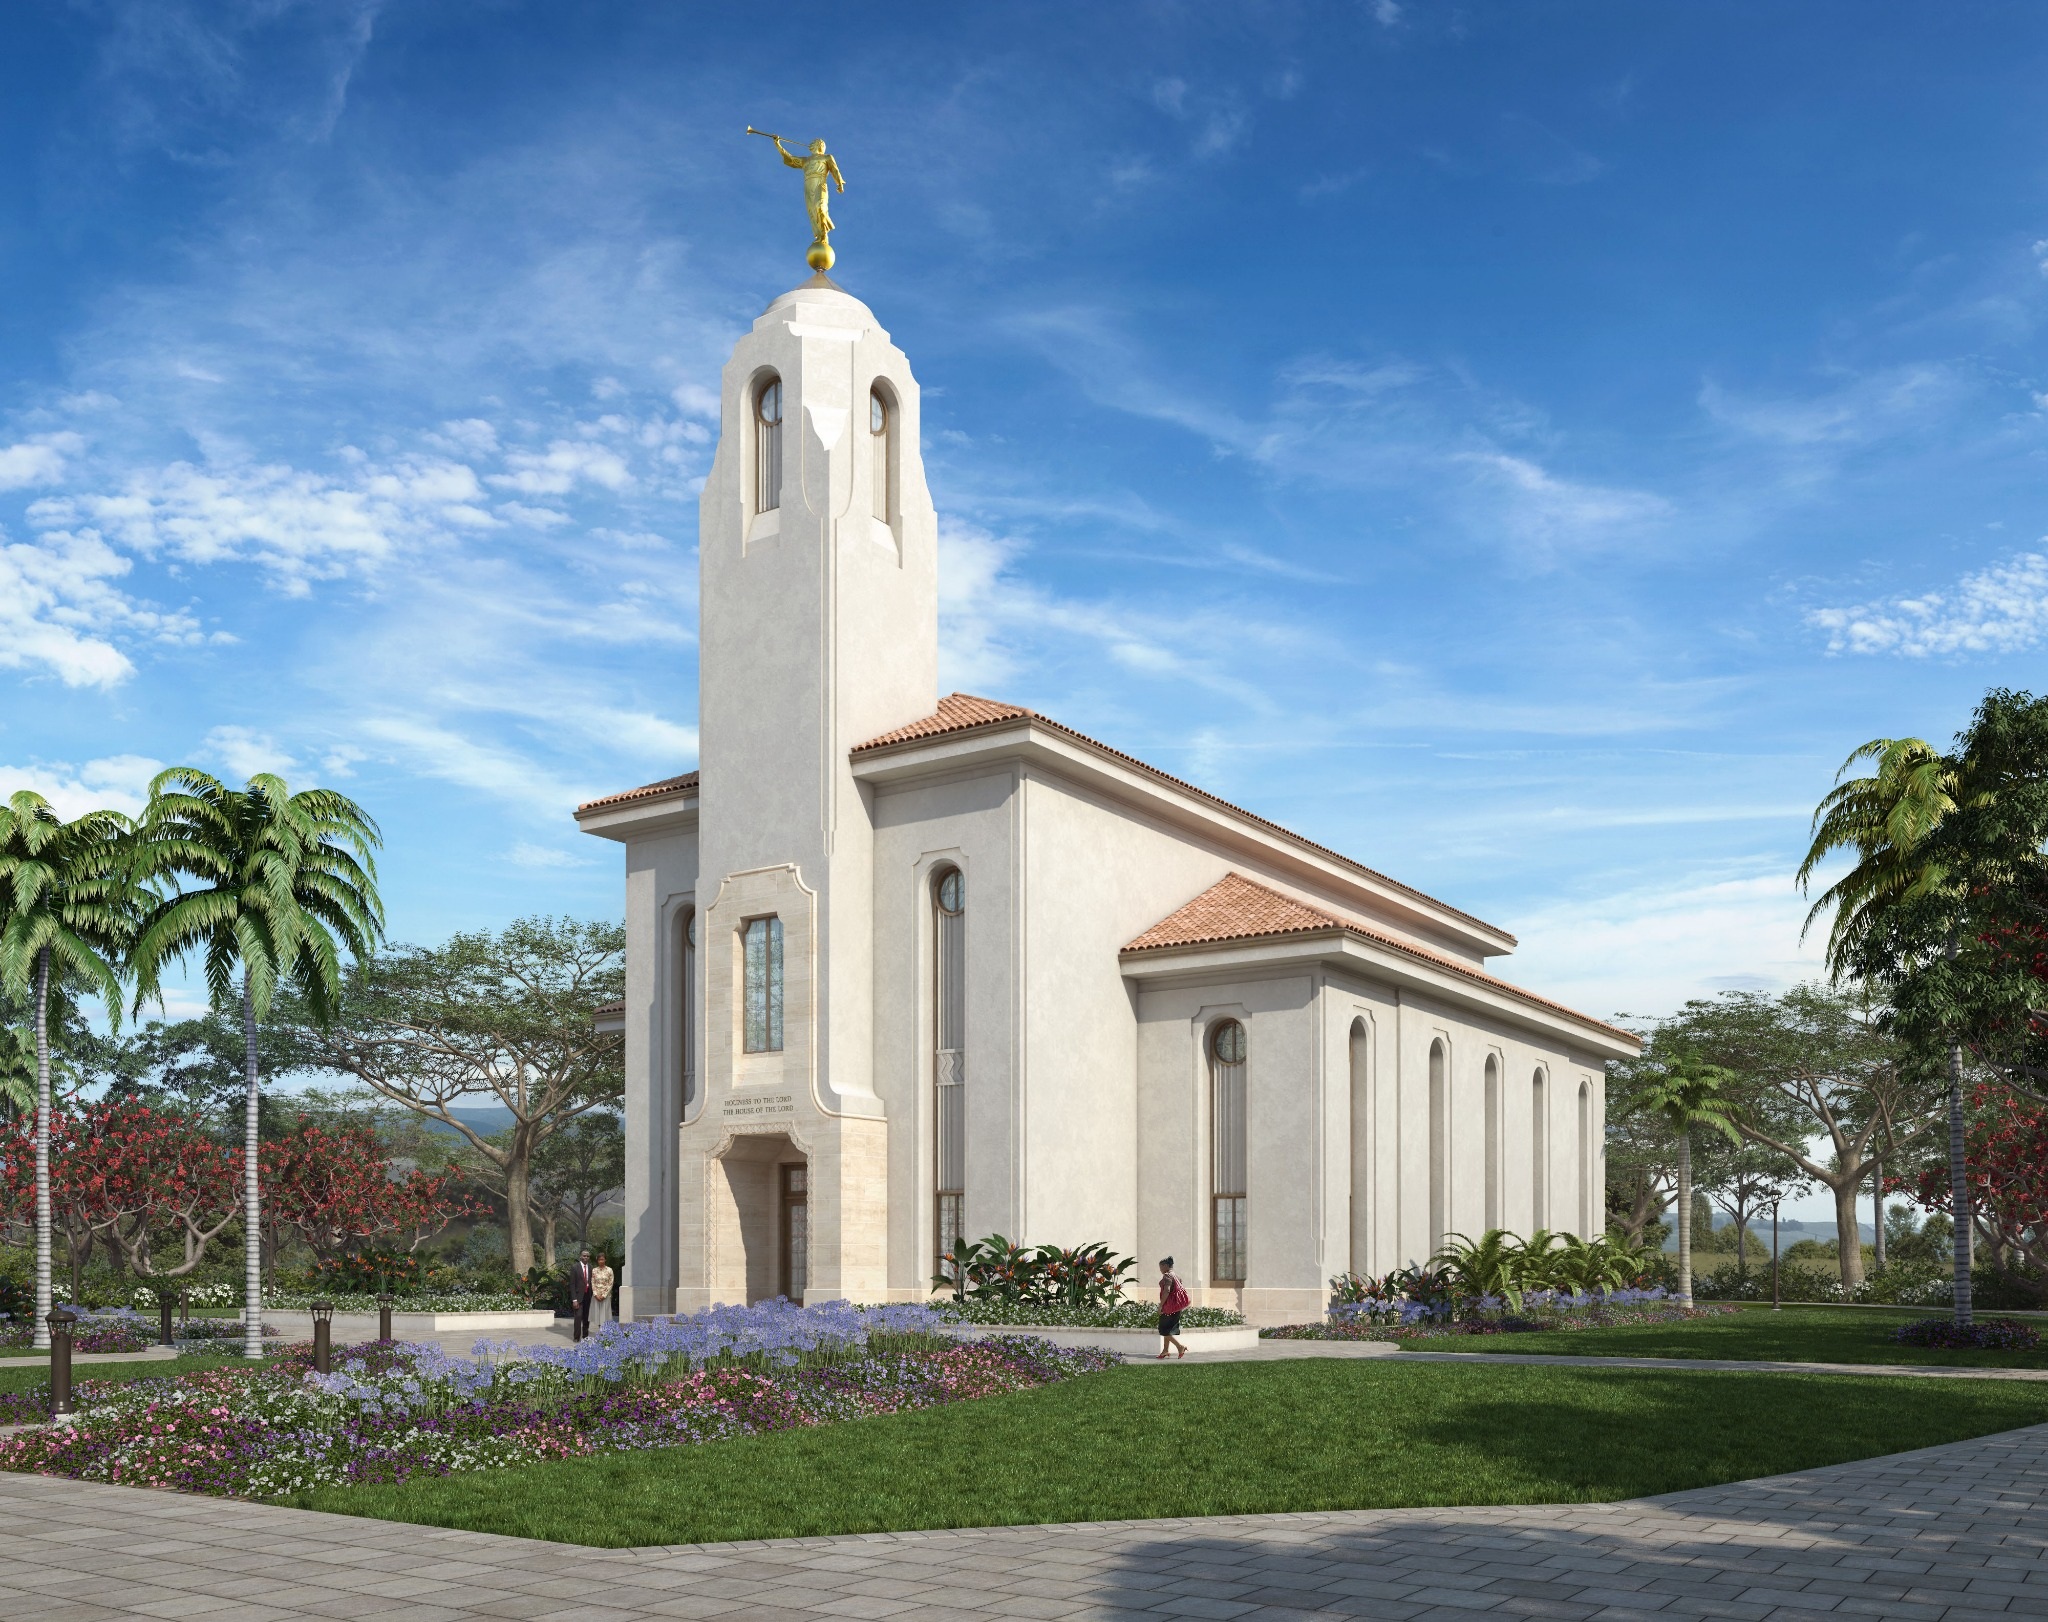 A rendering of the Durban South Africa Temple.